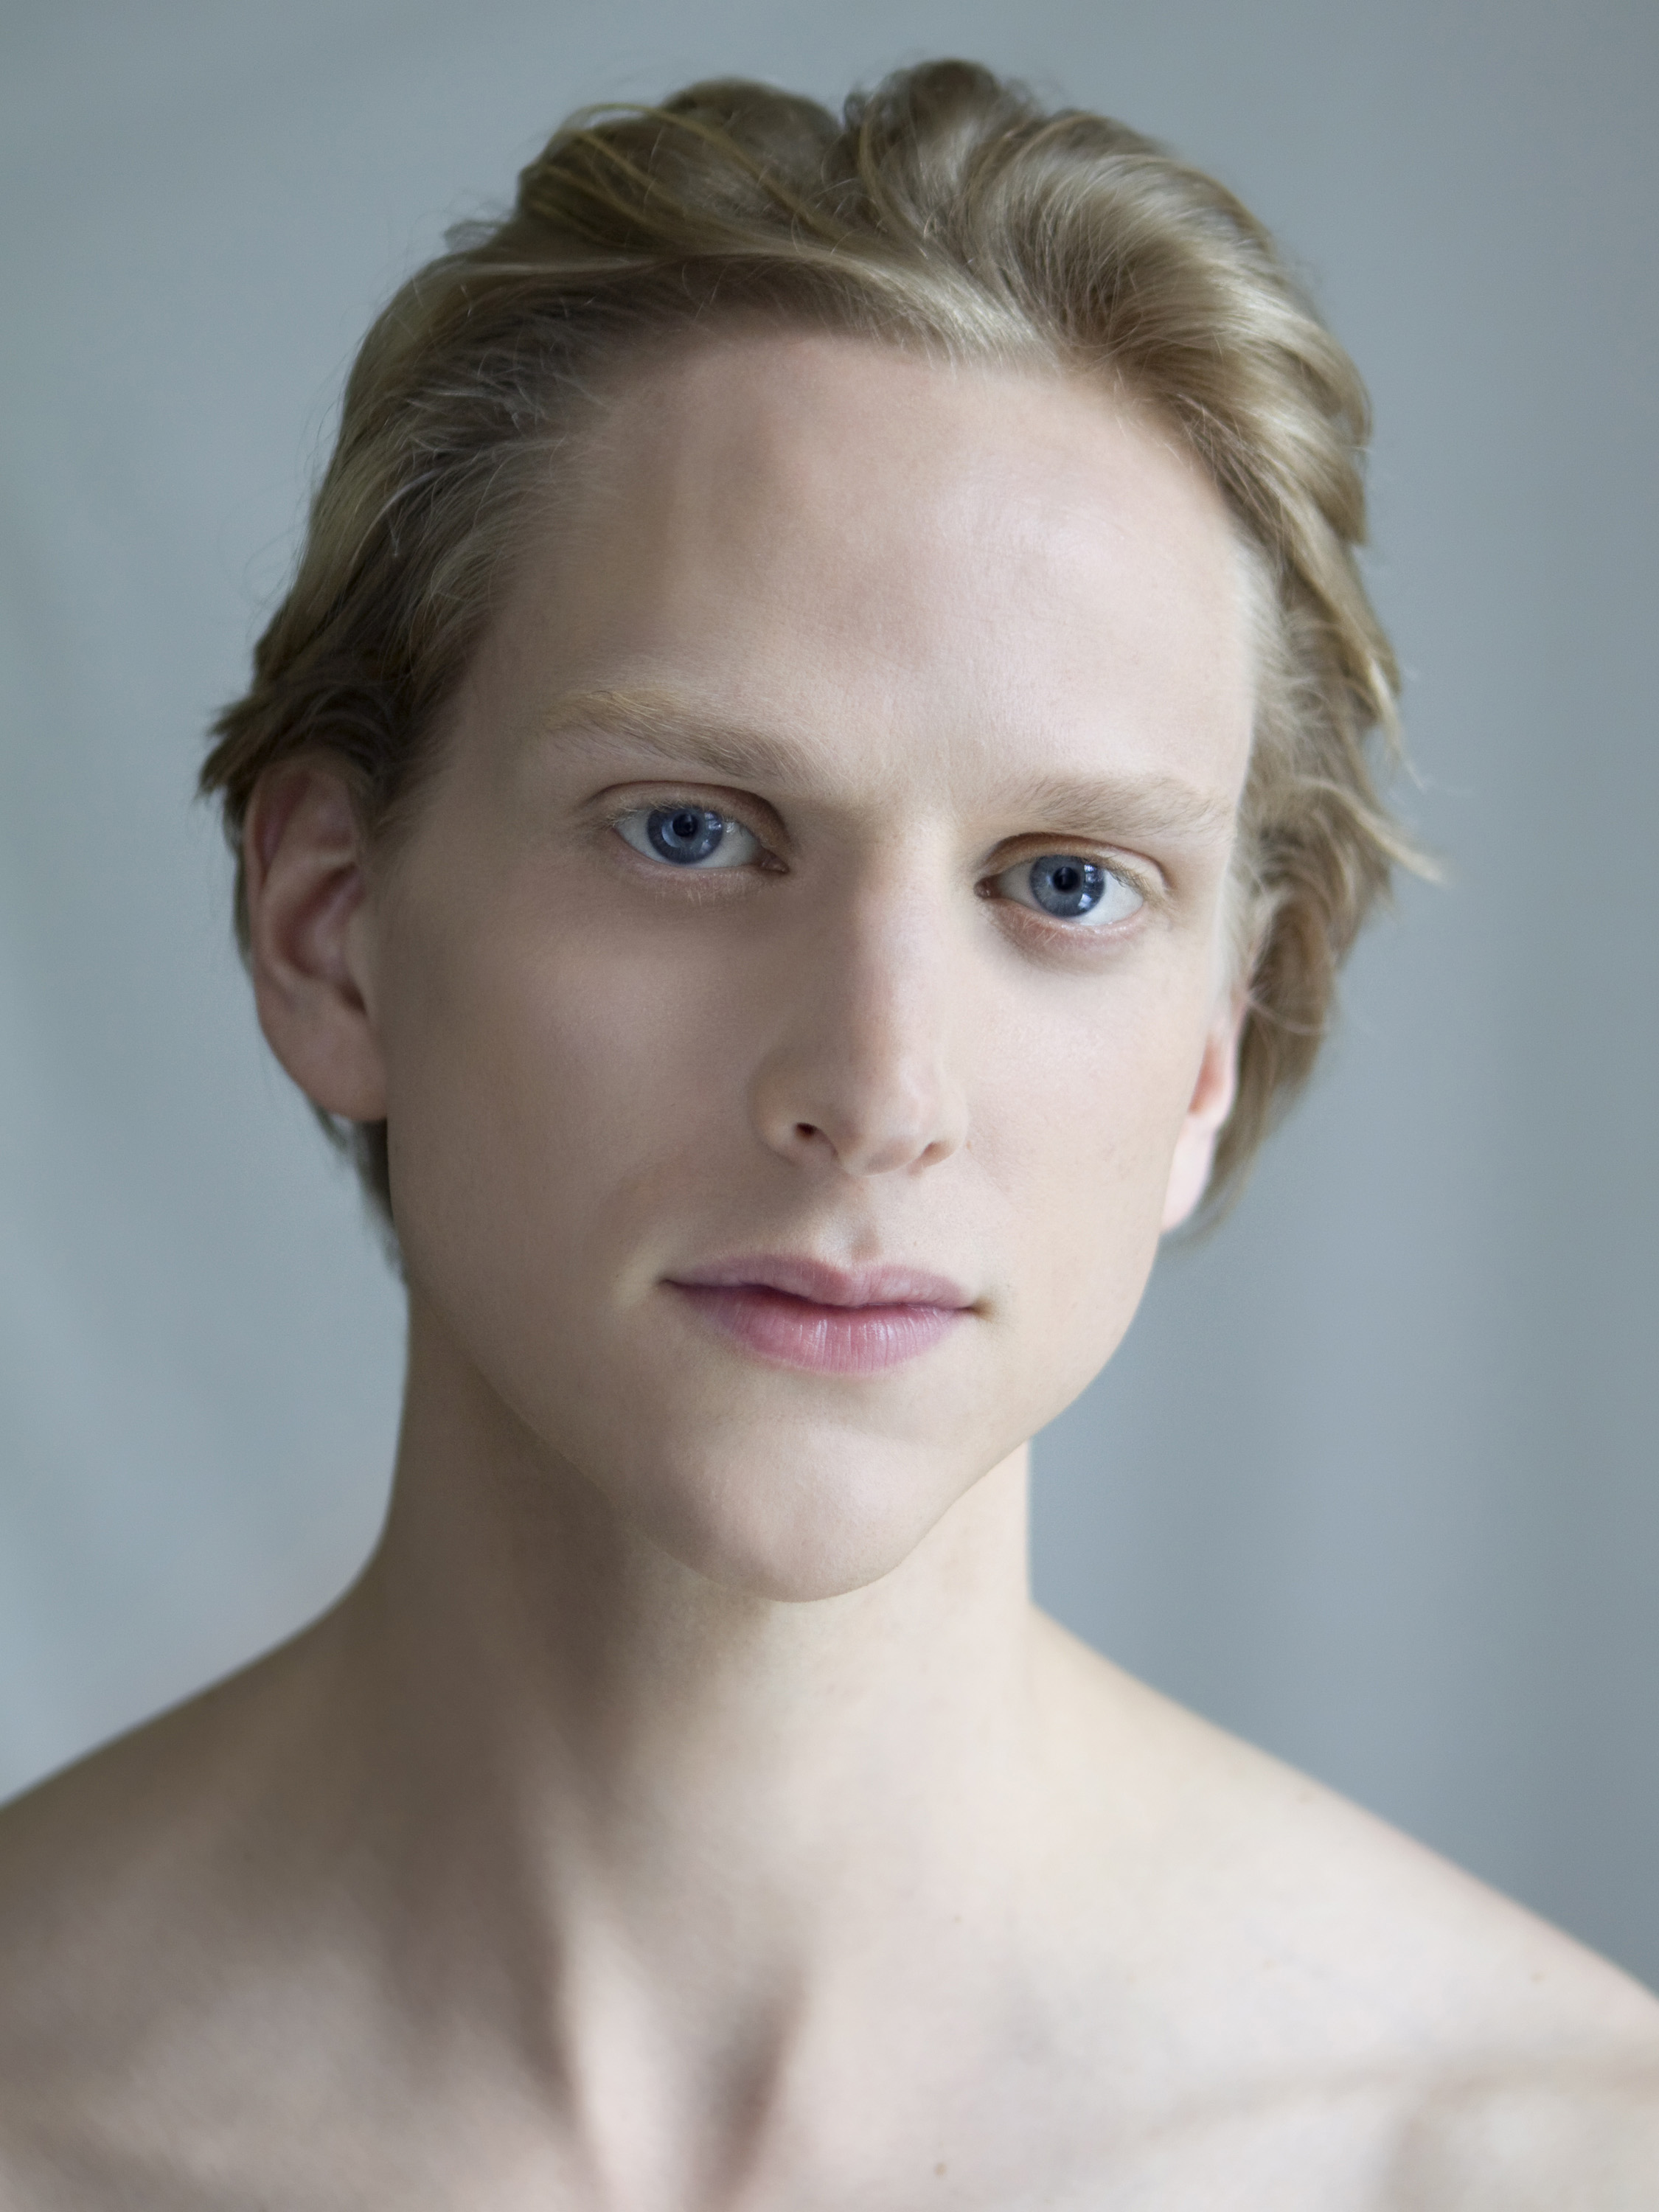 Interview with David Hallberg from American Ballet Theatre